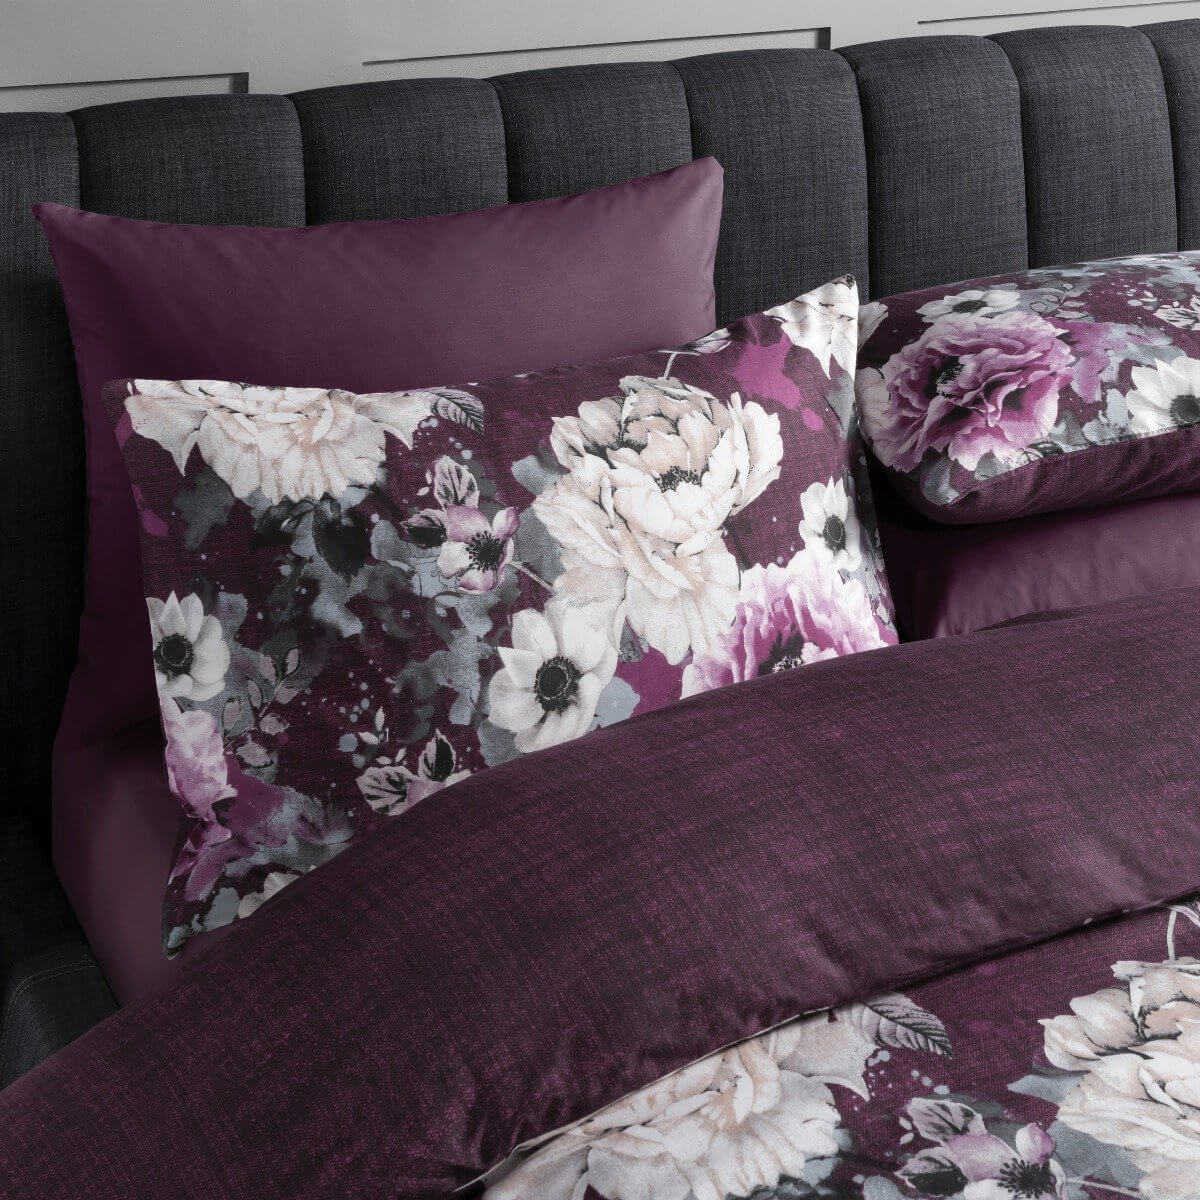 Inky Floral Purple Bedding - Reversible Duvet Cover and Pillowcase Set